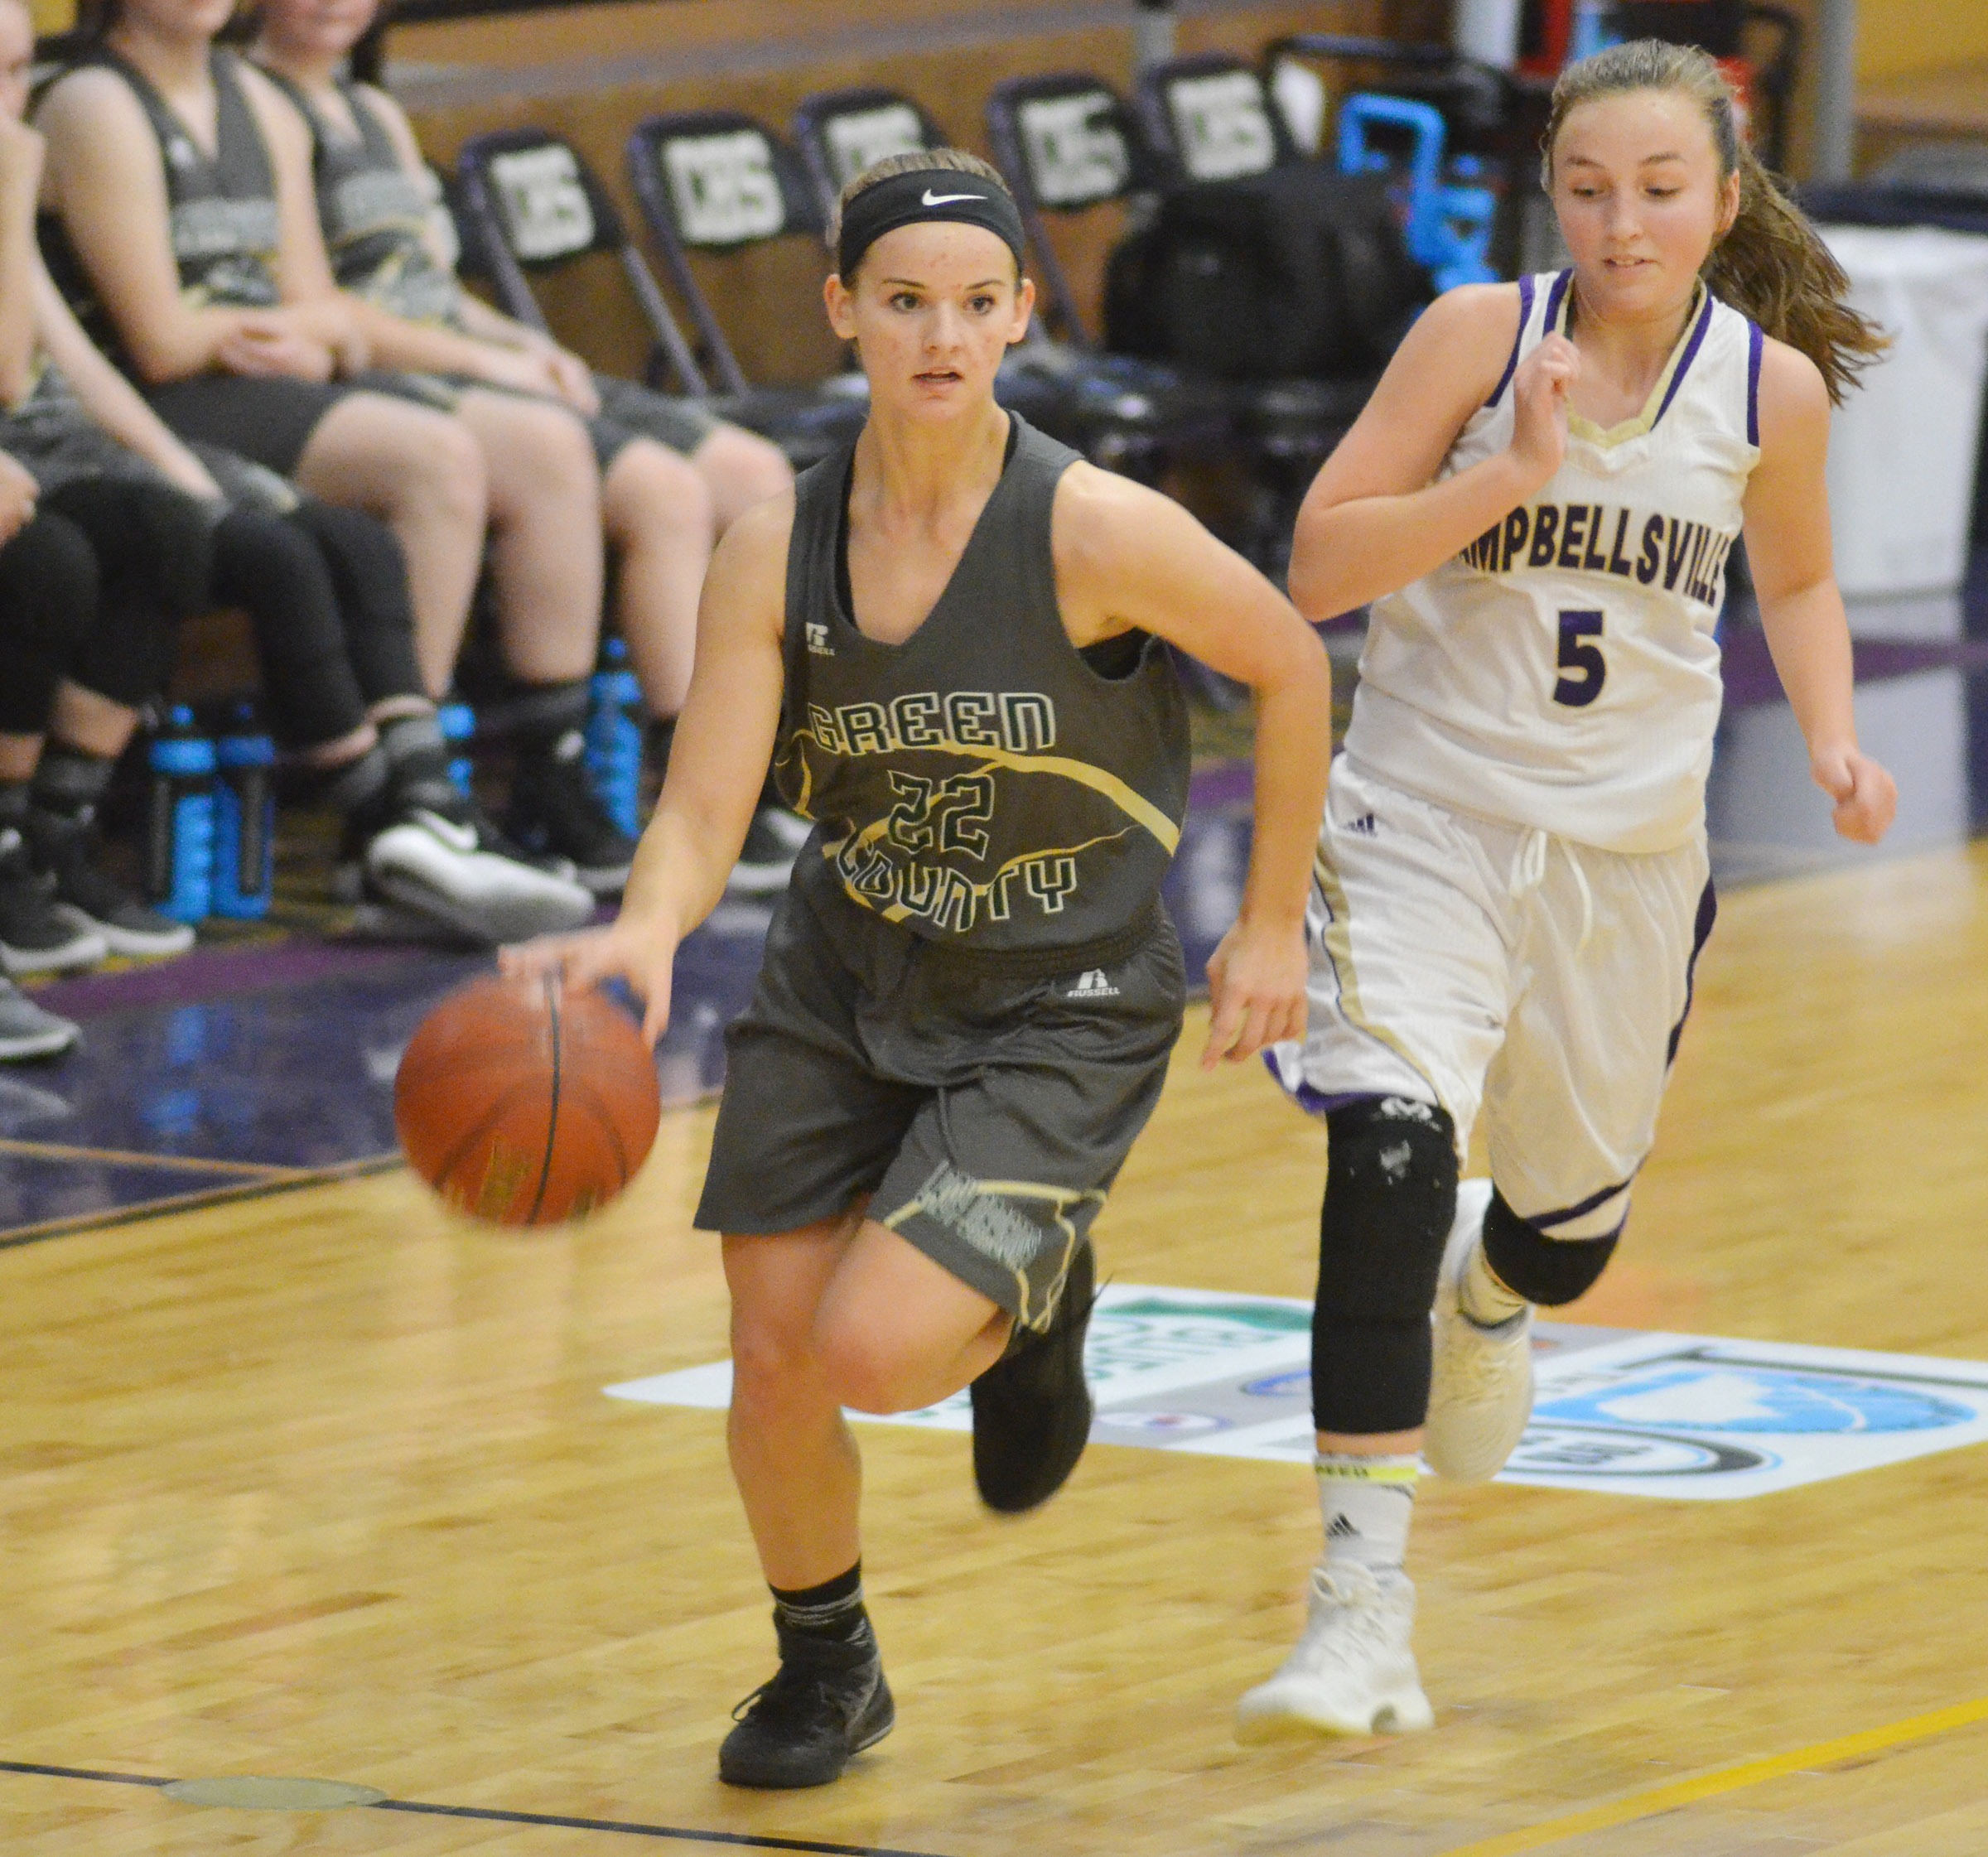 Campbellsville Middle School eighth-grader Lainey Watson runs down the court.